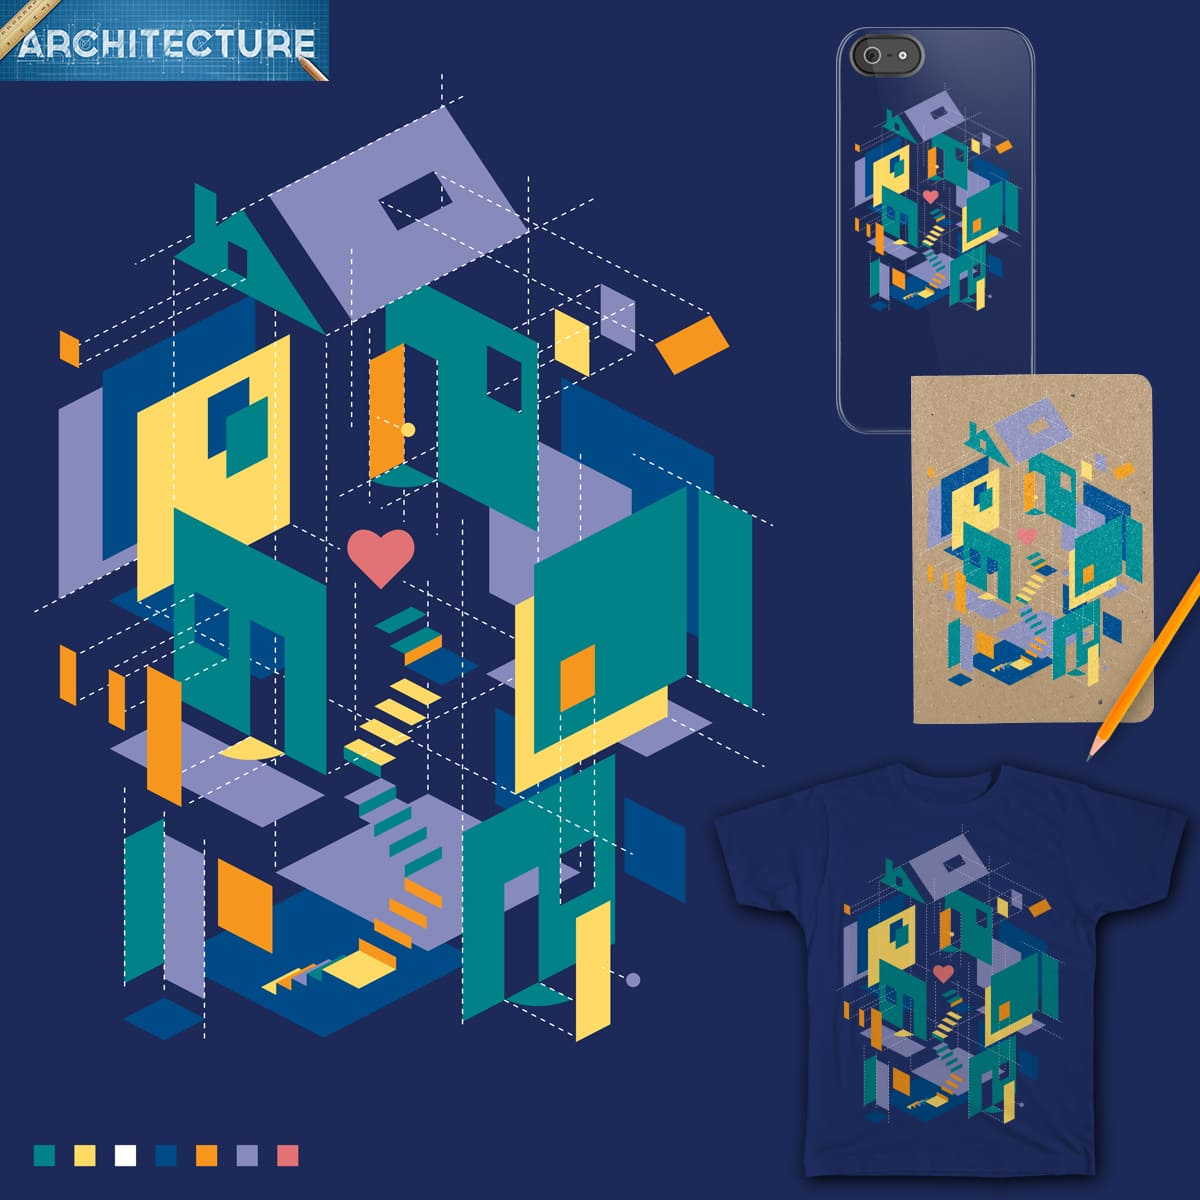 Dream Home by MrRtist21 on Threadless